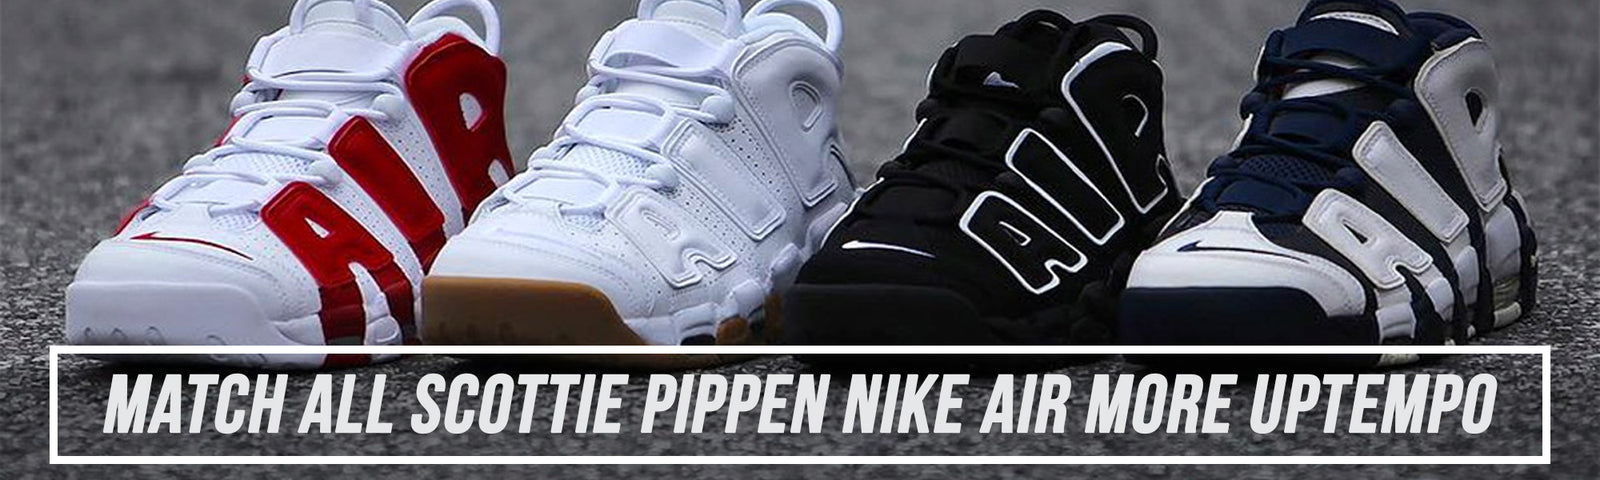 Scottie Pippen Nike Air More Uptempo Sneaker Matching Clothing